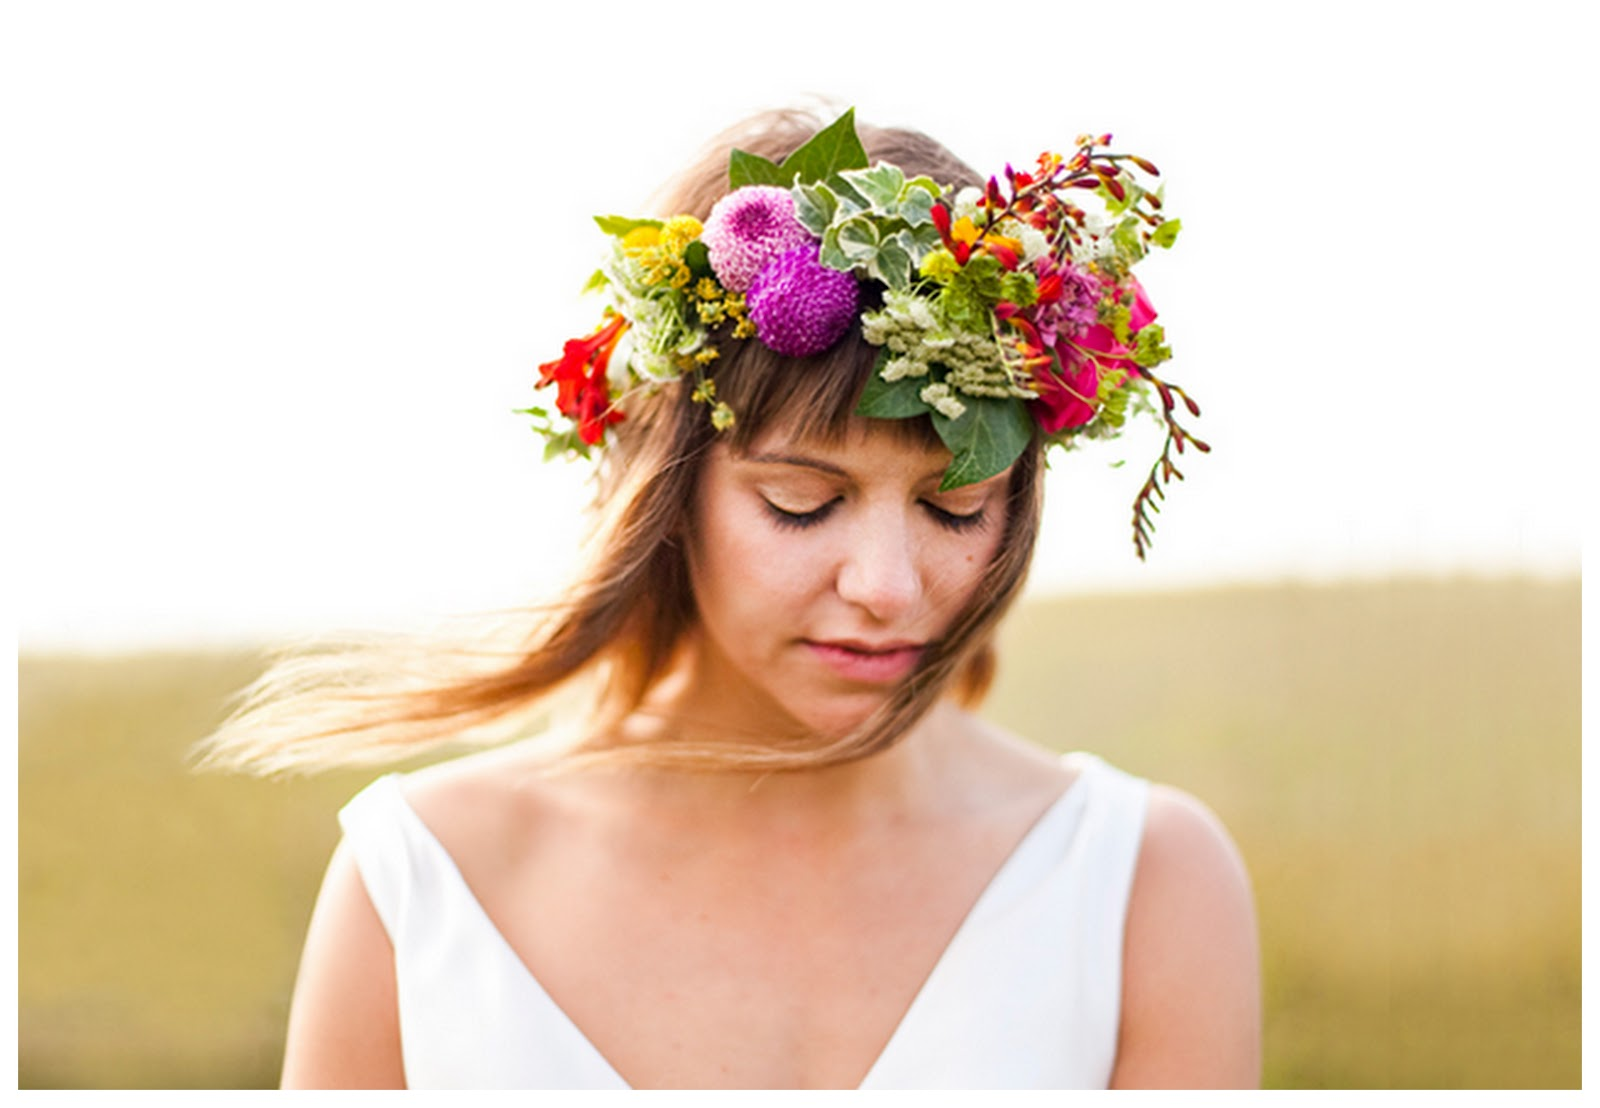 Perfect wedding bridal flower crowns bridal flower crowns izmirmasajfo Image collections